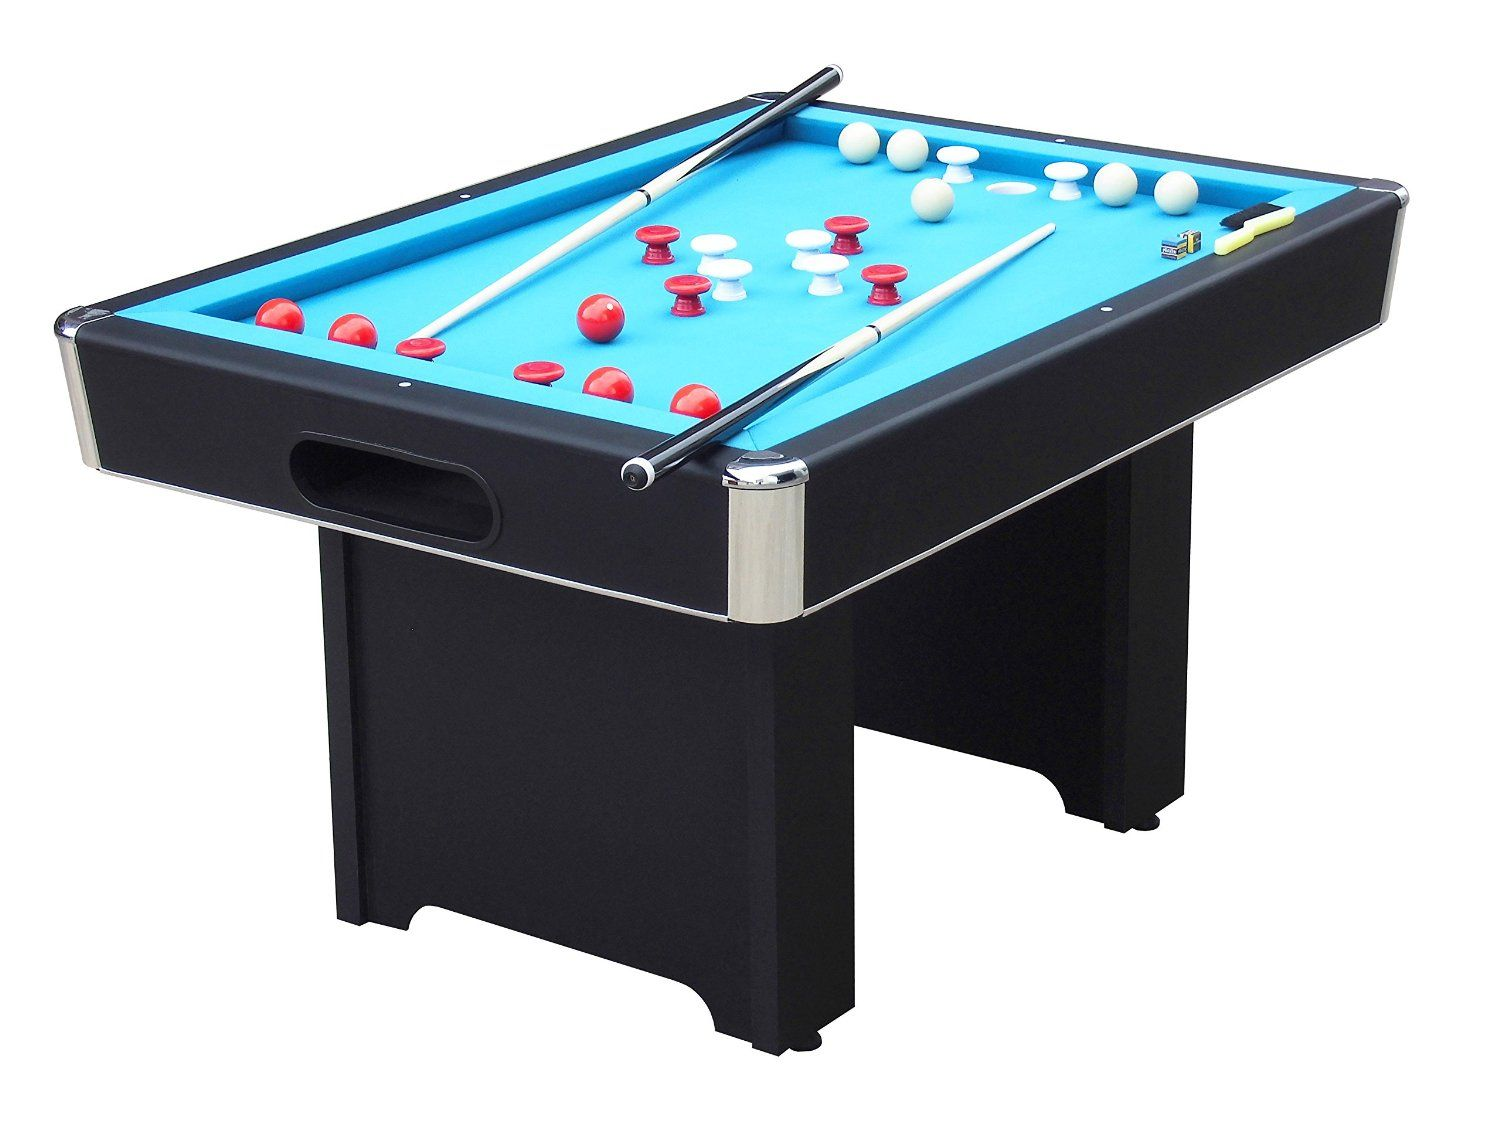 How To Cut Rubber To A Bumper Pool Table   Http://sfor.